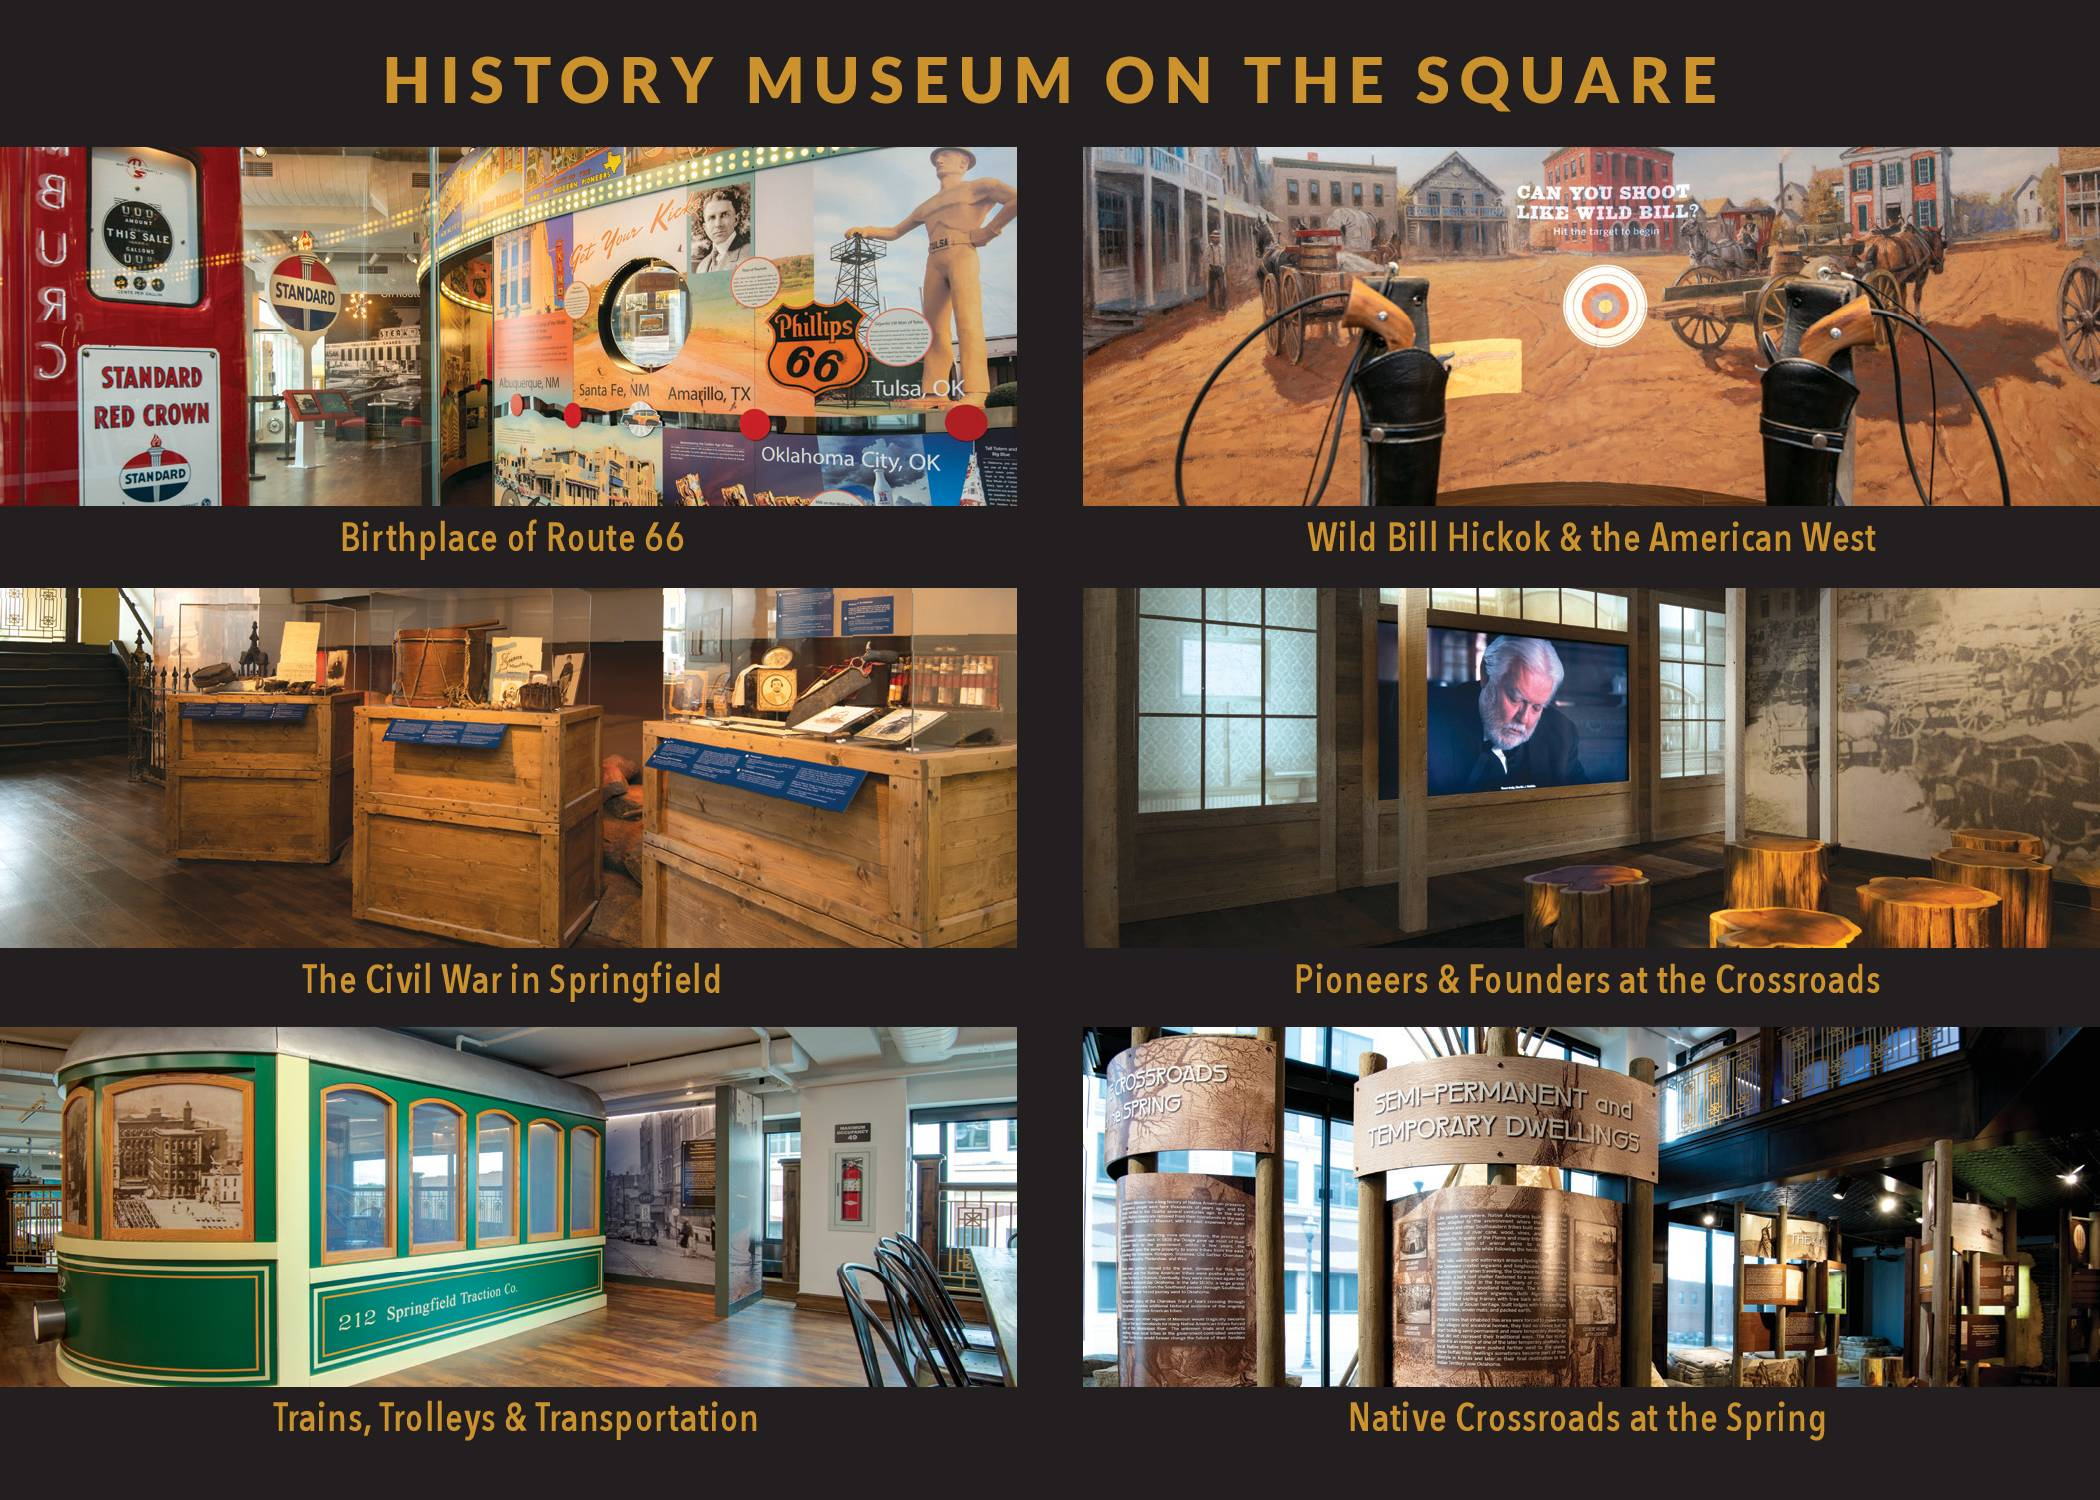 Highlights from each of the galleries at the History Museum on the Square.